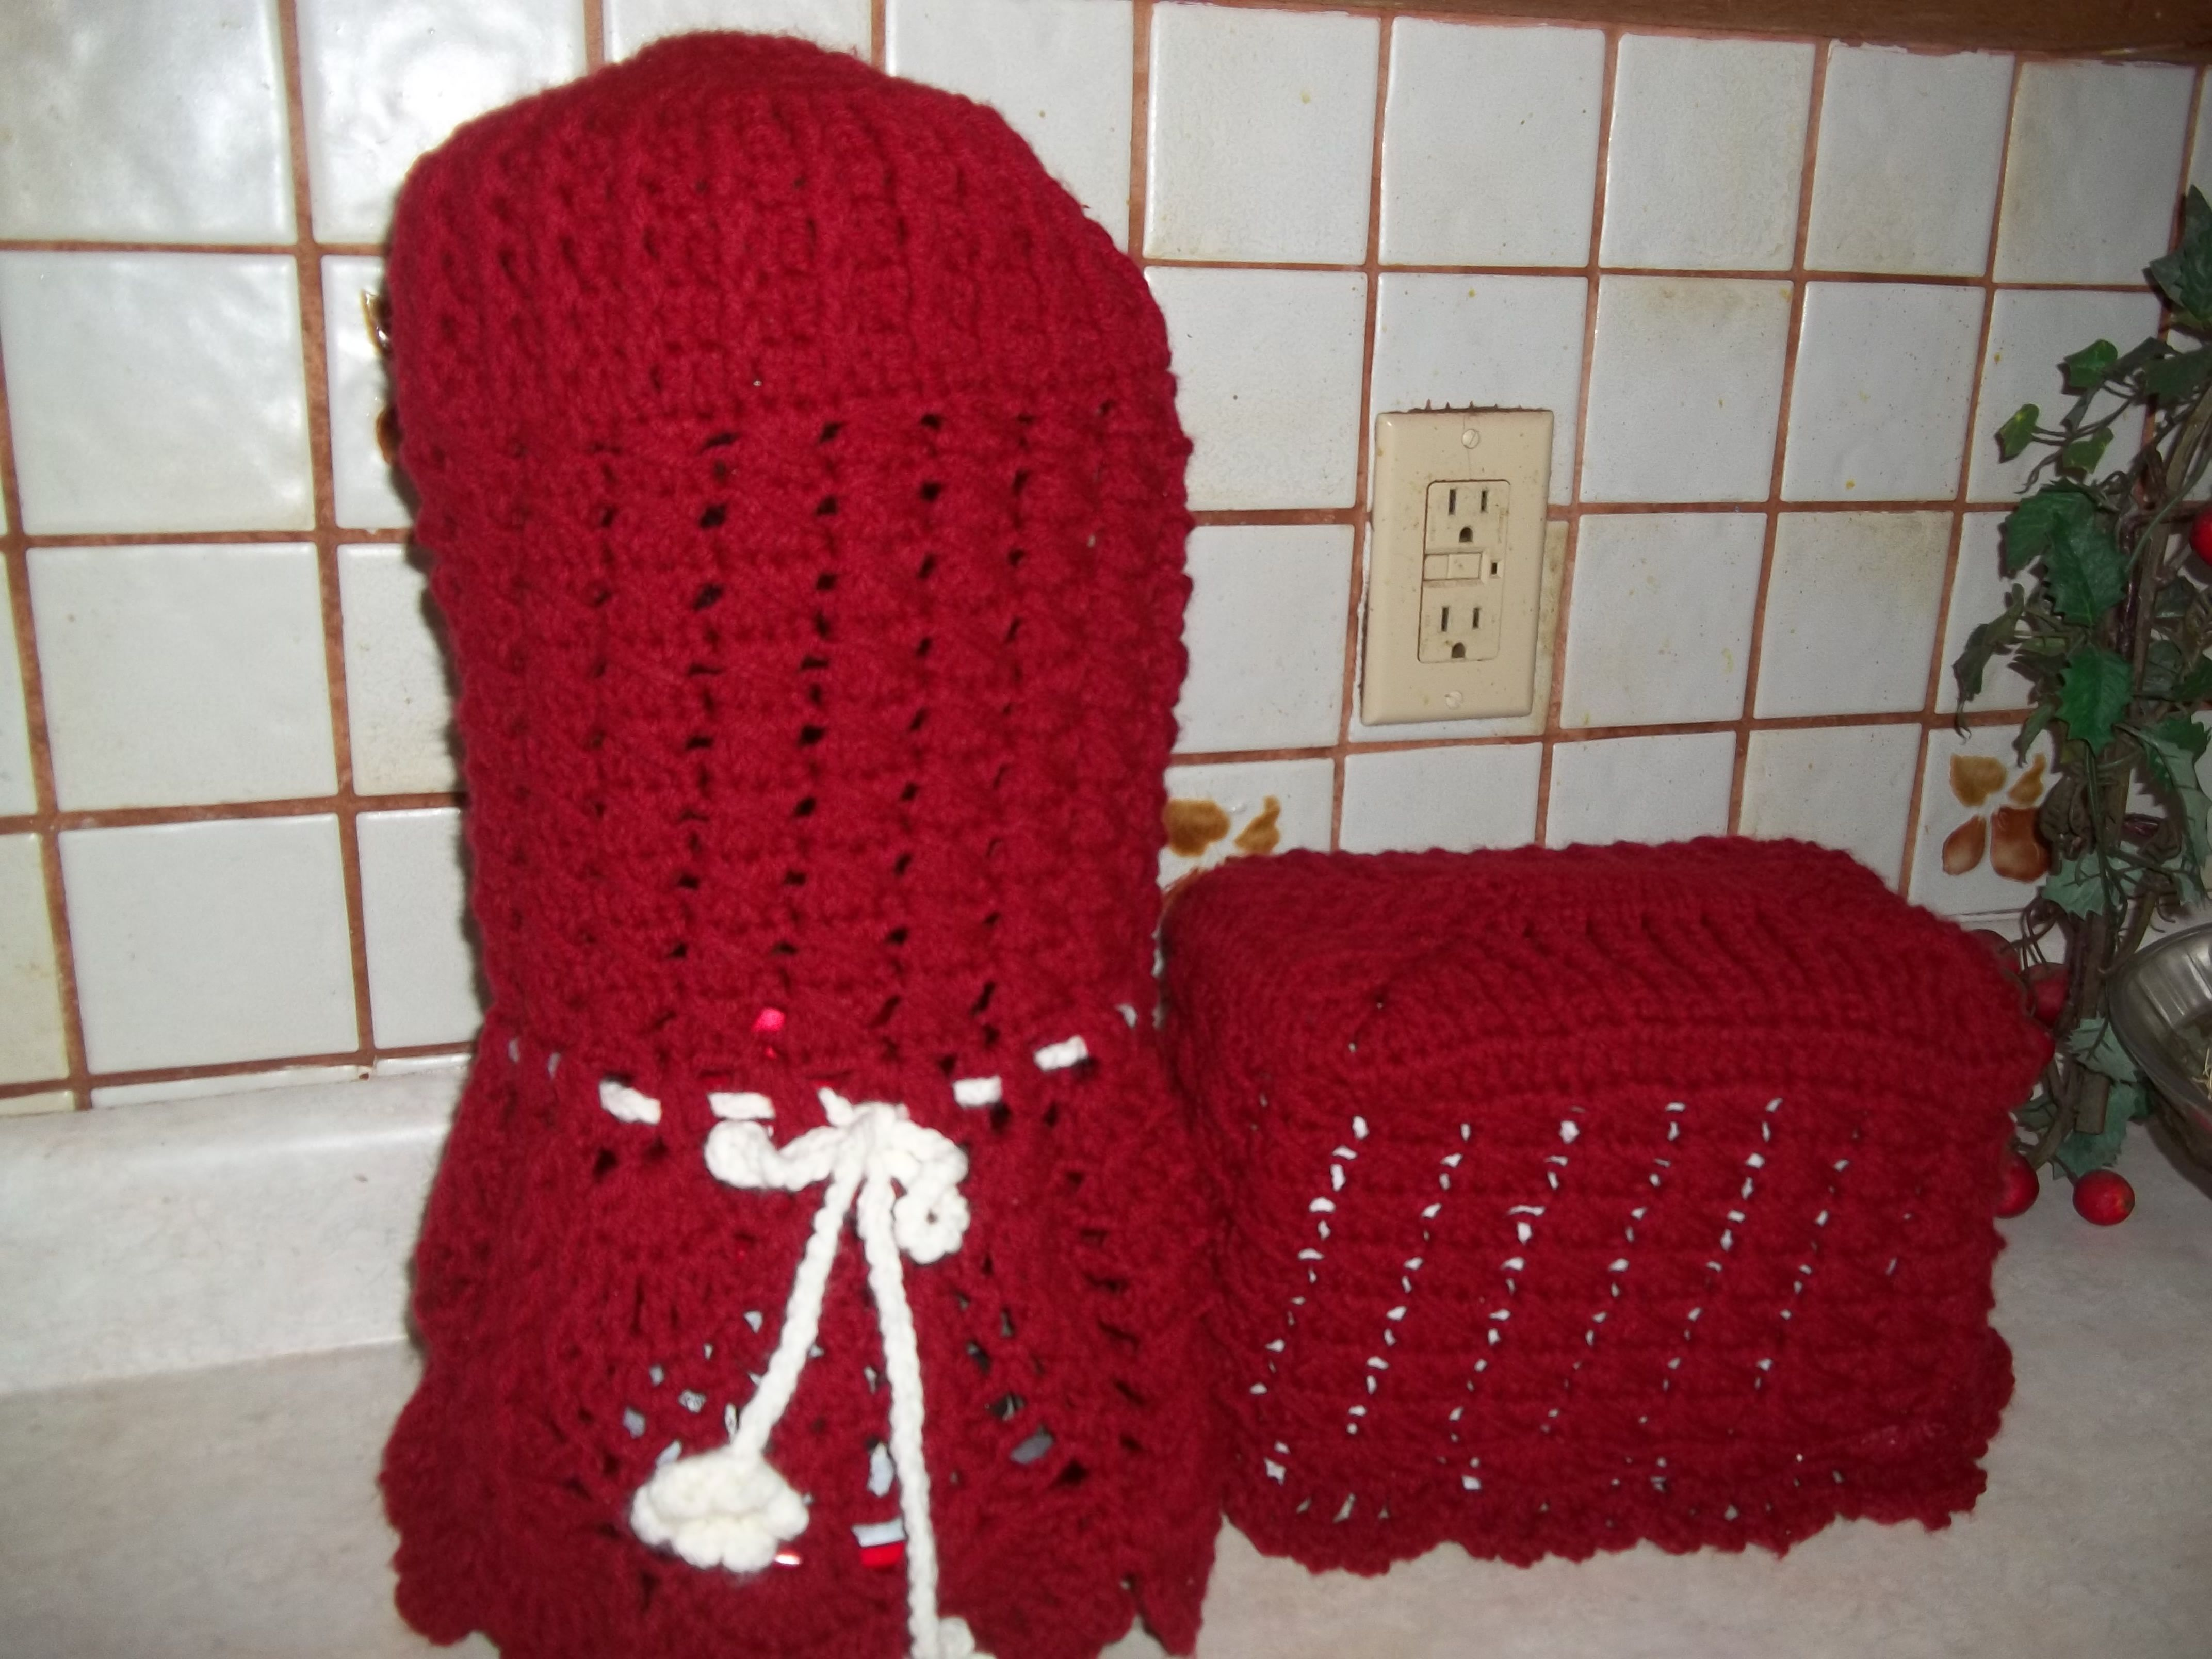 Crochet Blender And Toaster Covers For The Home Trippy Hippy Afghan Pattern Kingdom